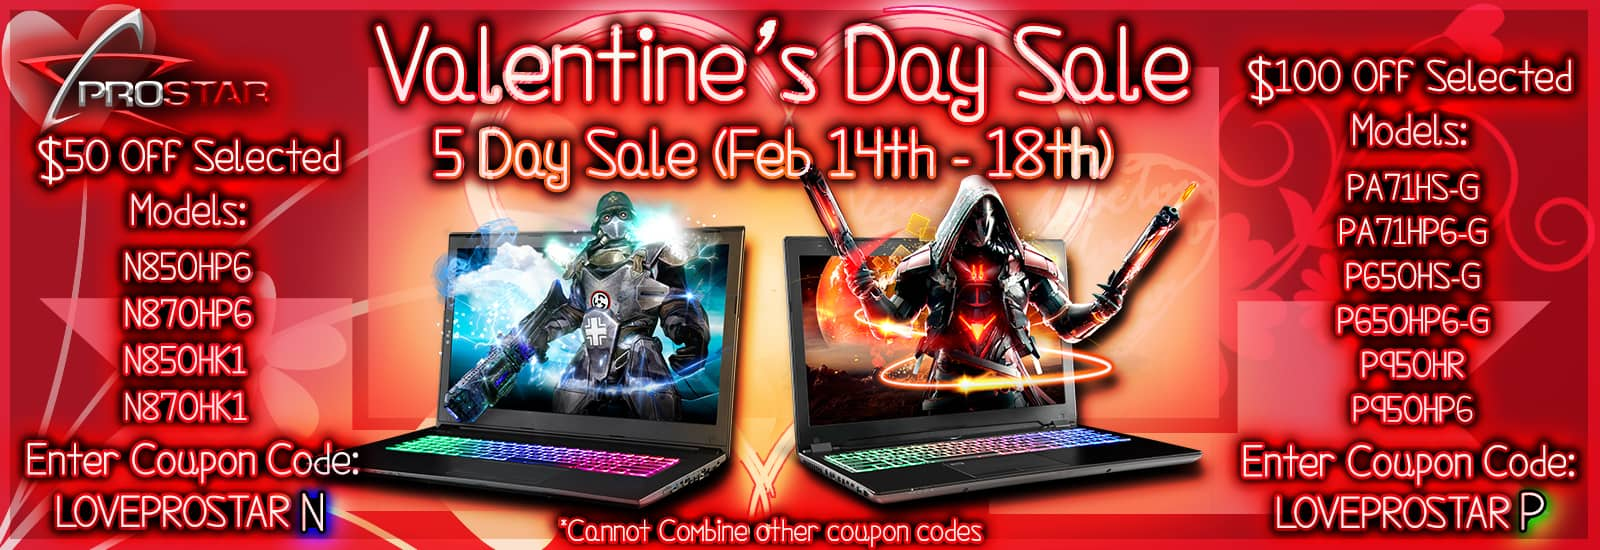 Pro-Star Valentine Day Sale: $50 OFF on  N Series, $100 off in P Series laptop. $1050